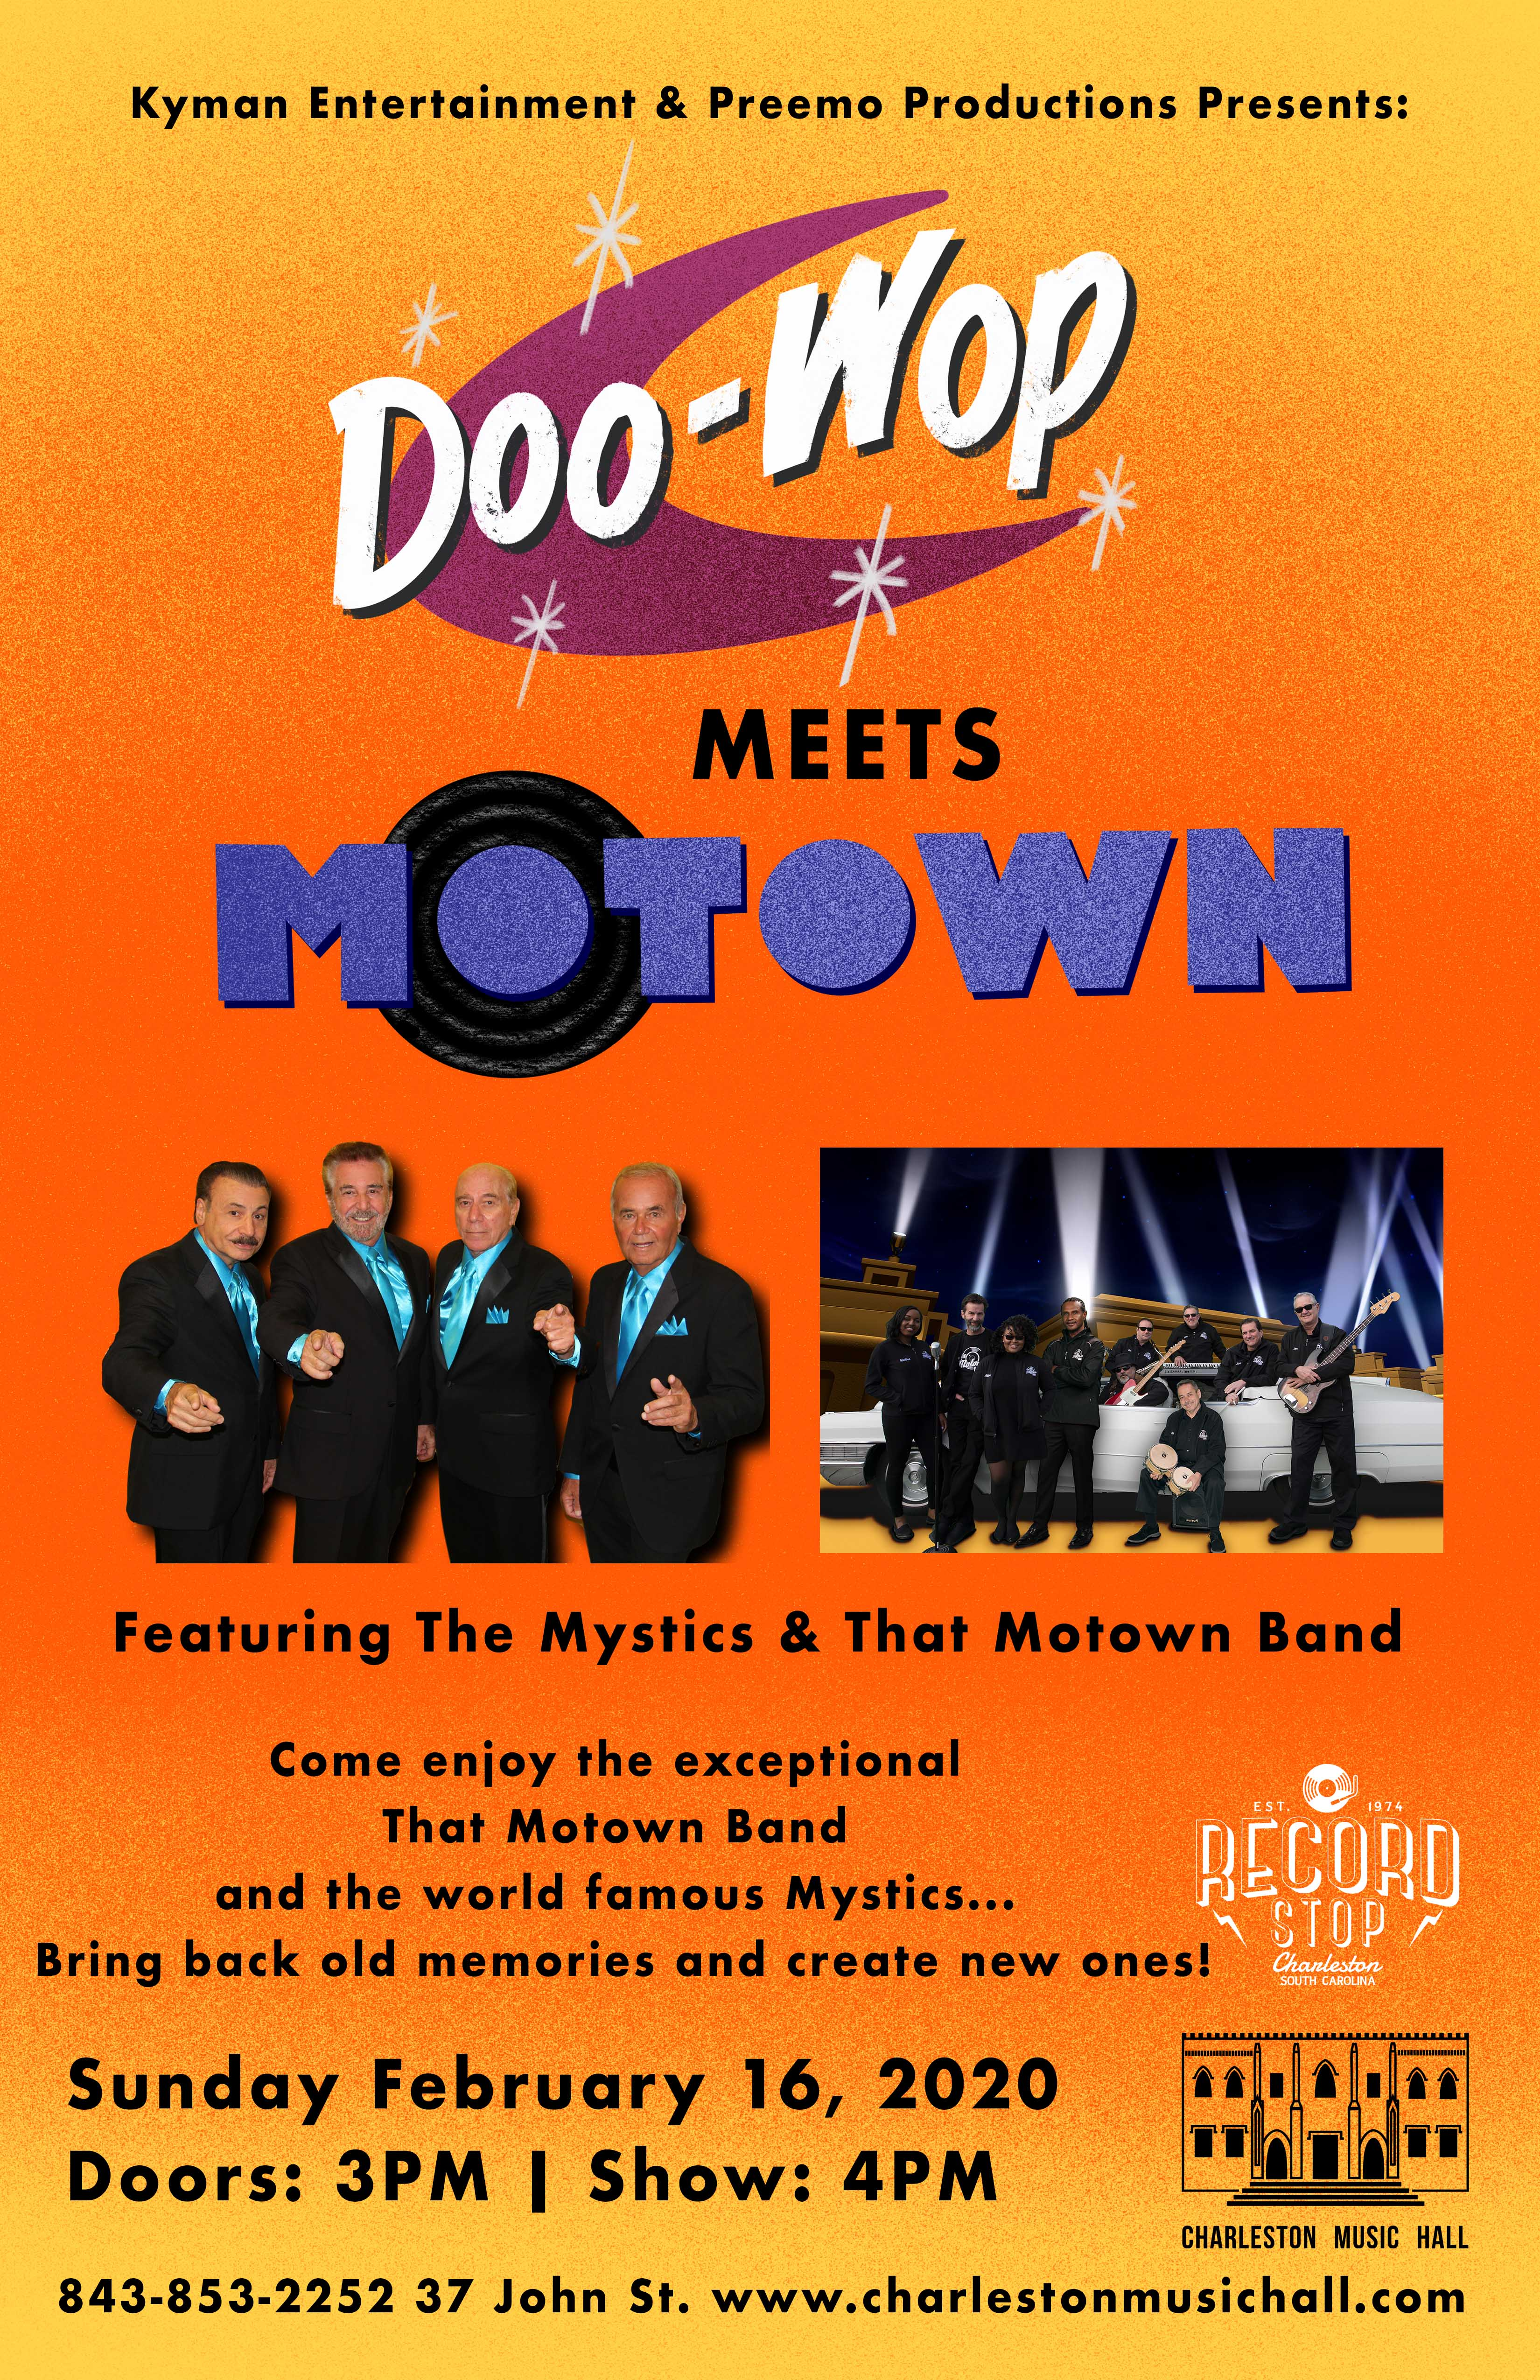 Doo Wop Meets Motown featuring The Mystics and That Motown Band